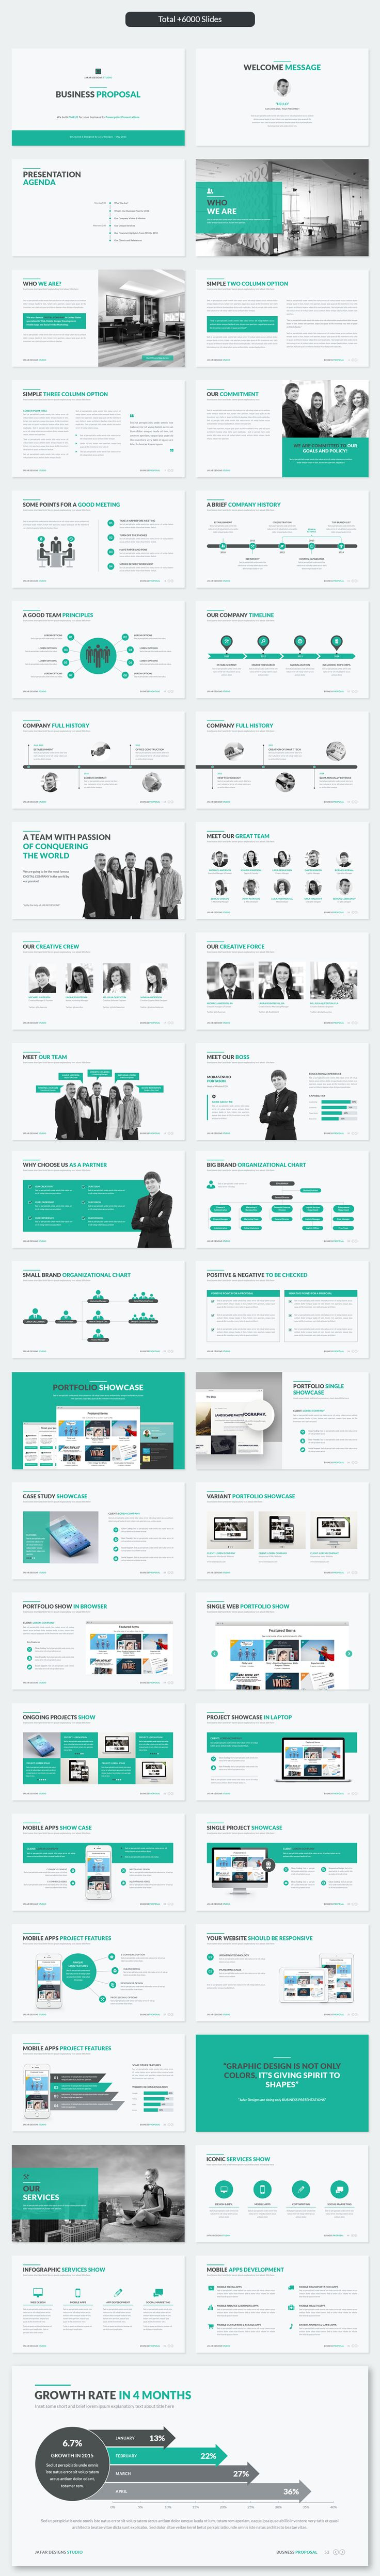 25 trending online powerpoint ideas on pinterest online ppt showcase and discover creative work on the worlds leading online platform for creative industries business powerpoint templatesppt toneelgroepblik Choice Image